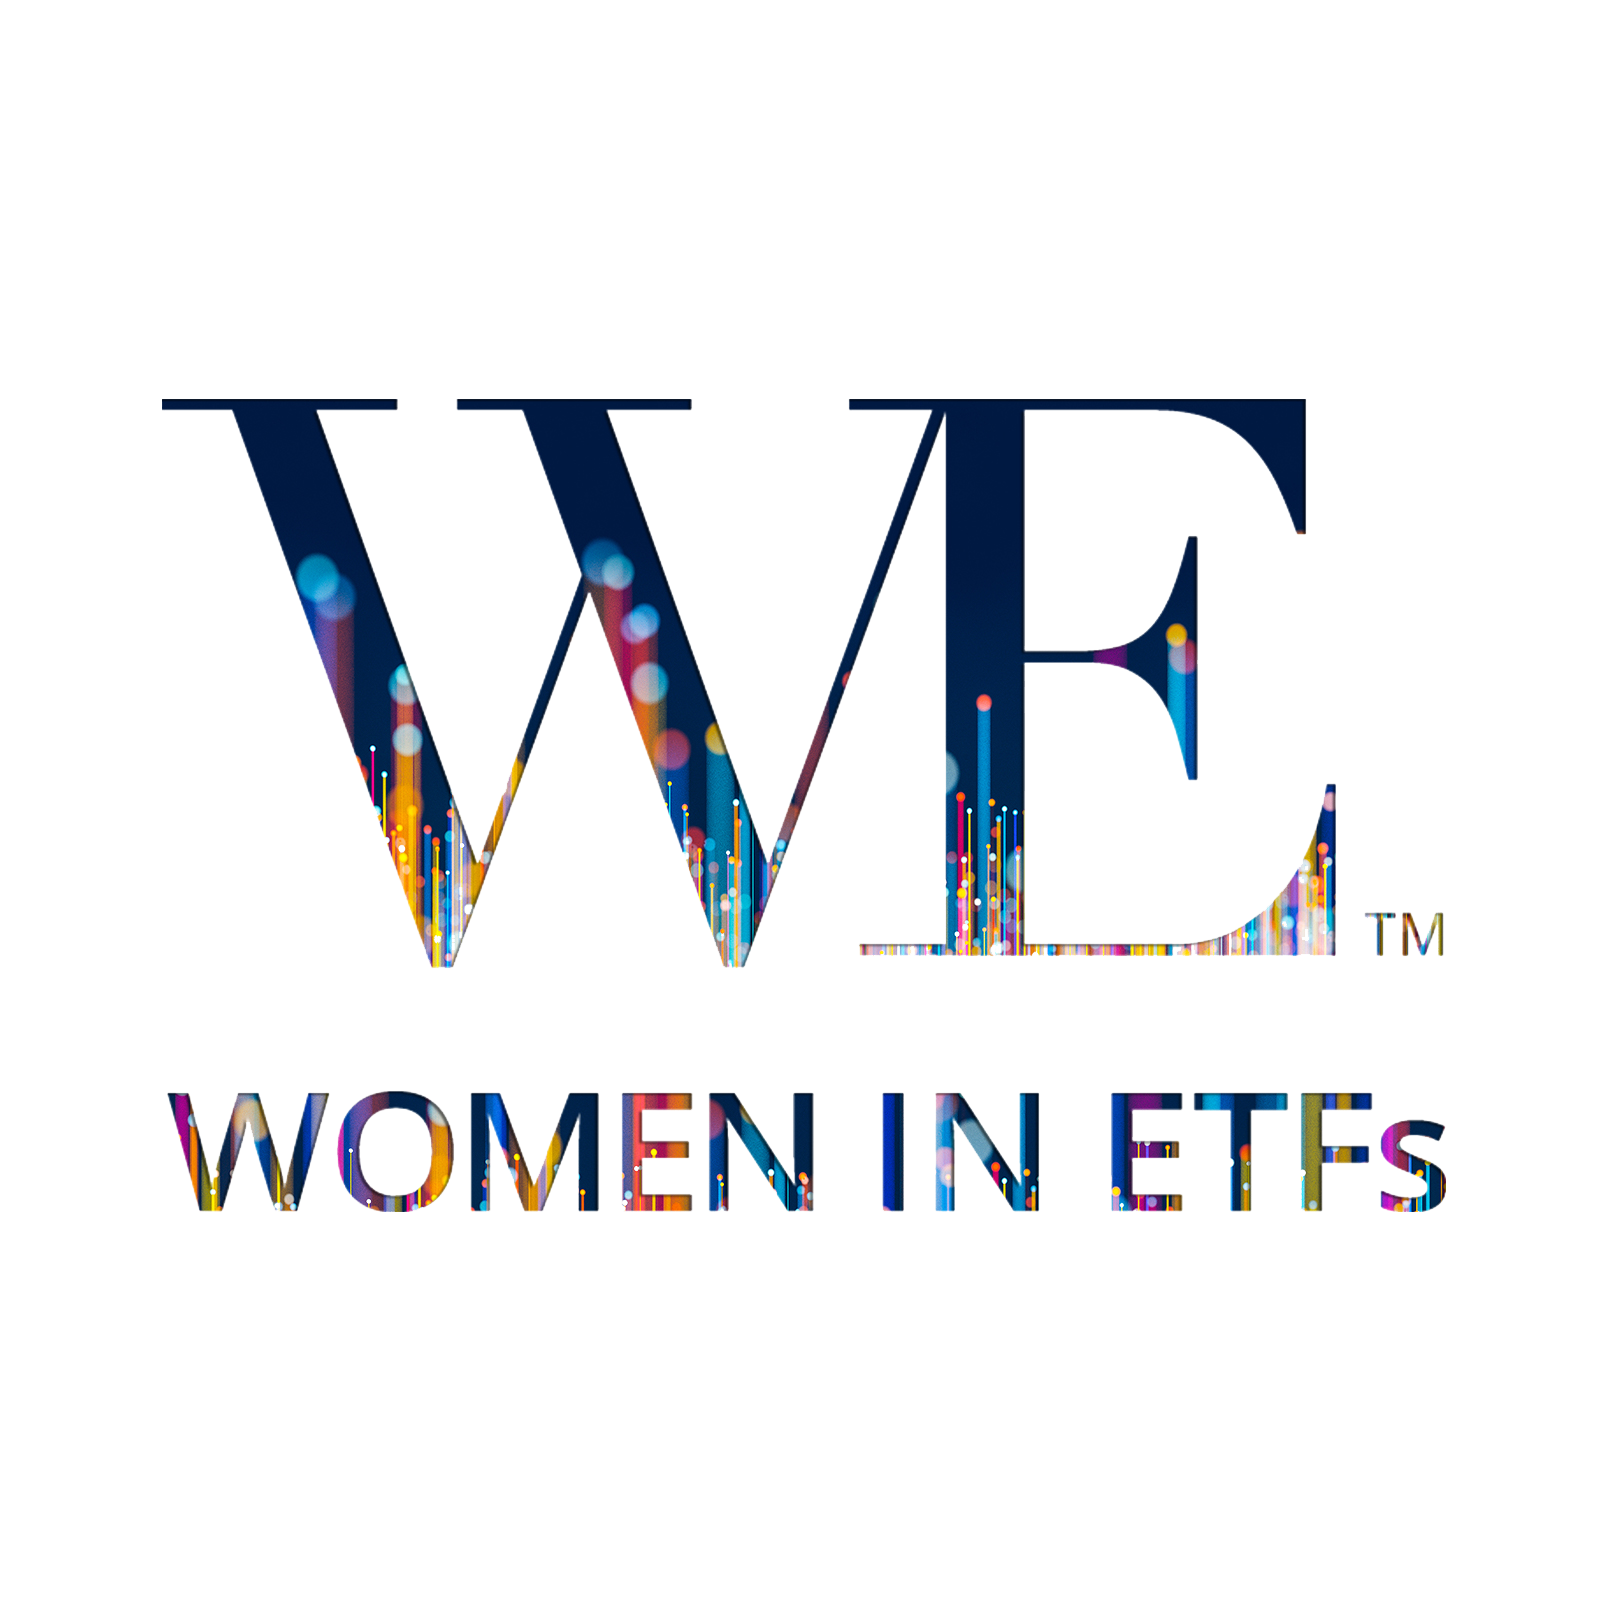 Women in ETFs conference to take place on 26-27 January